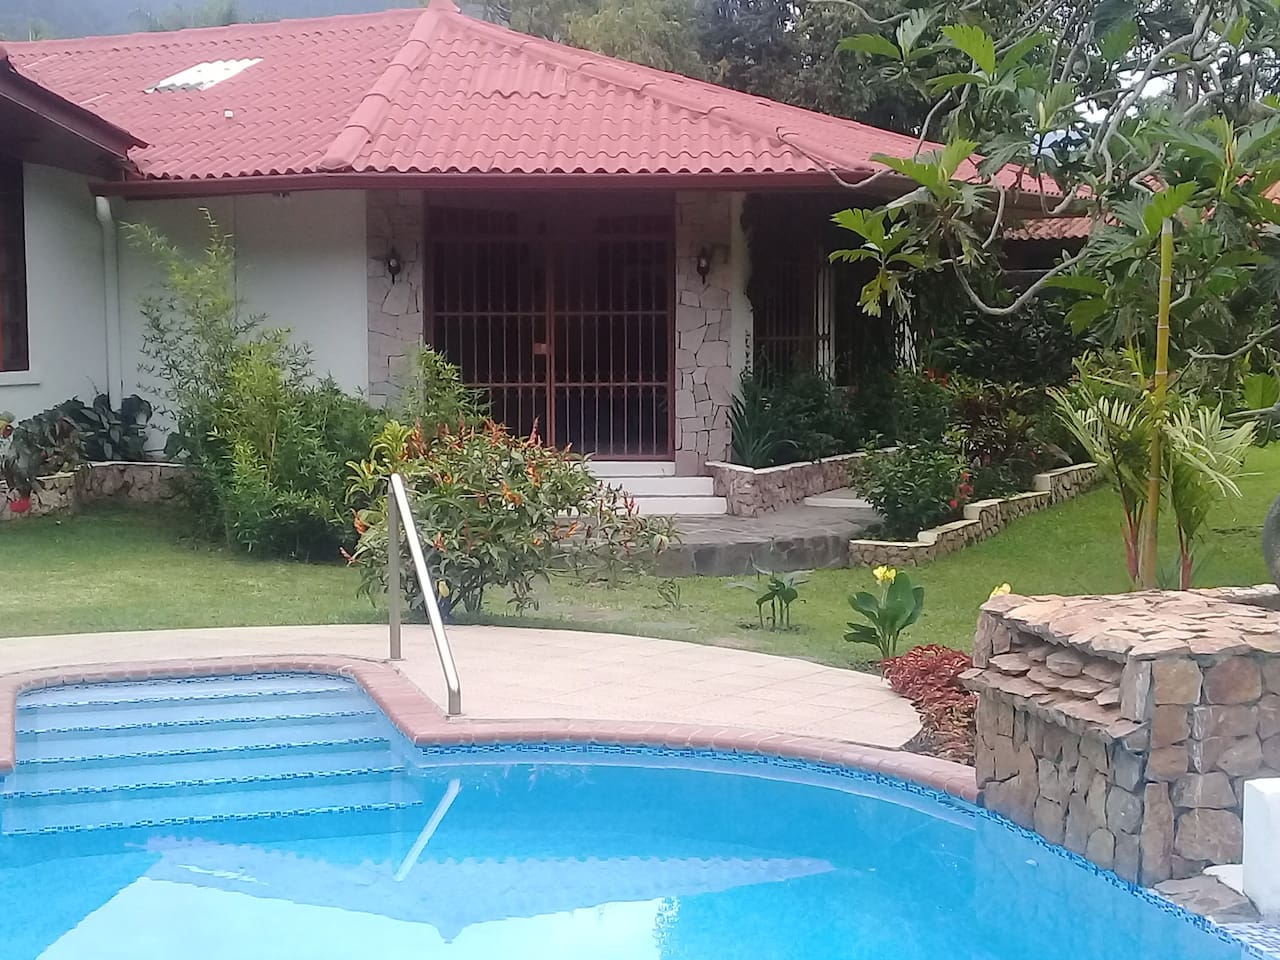 Rear access to the swimming pool